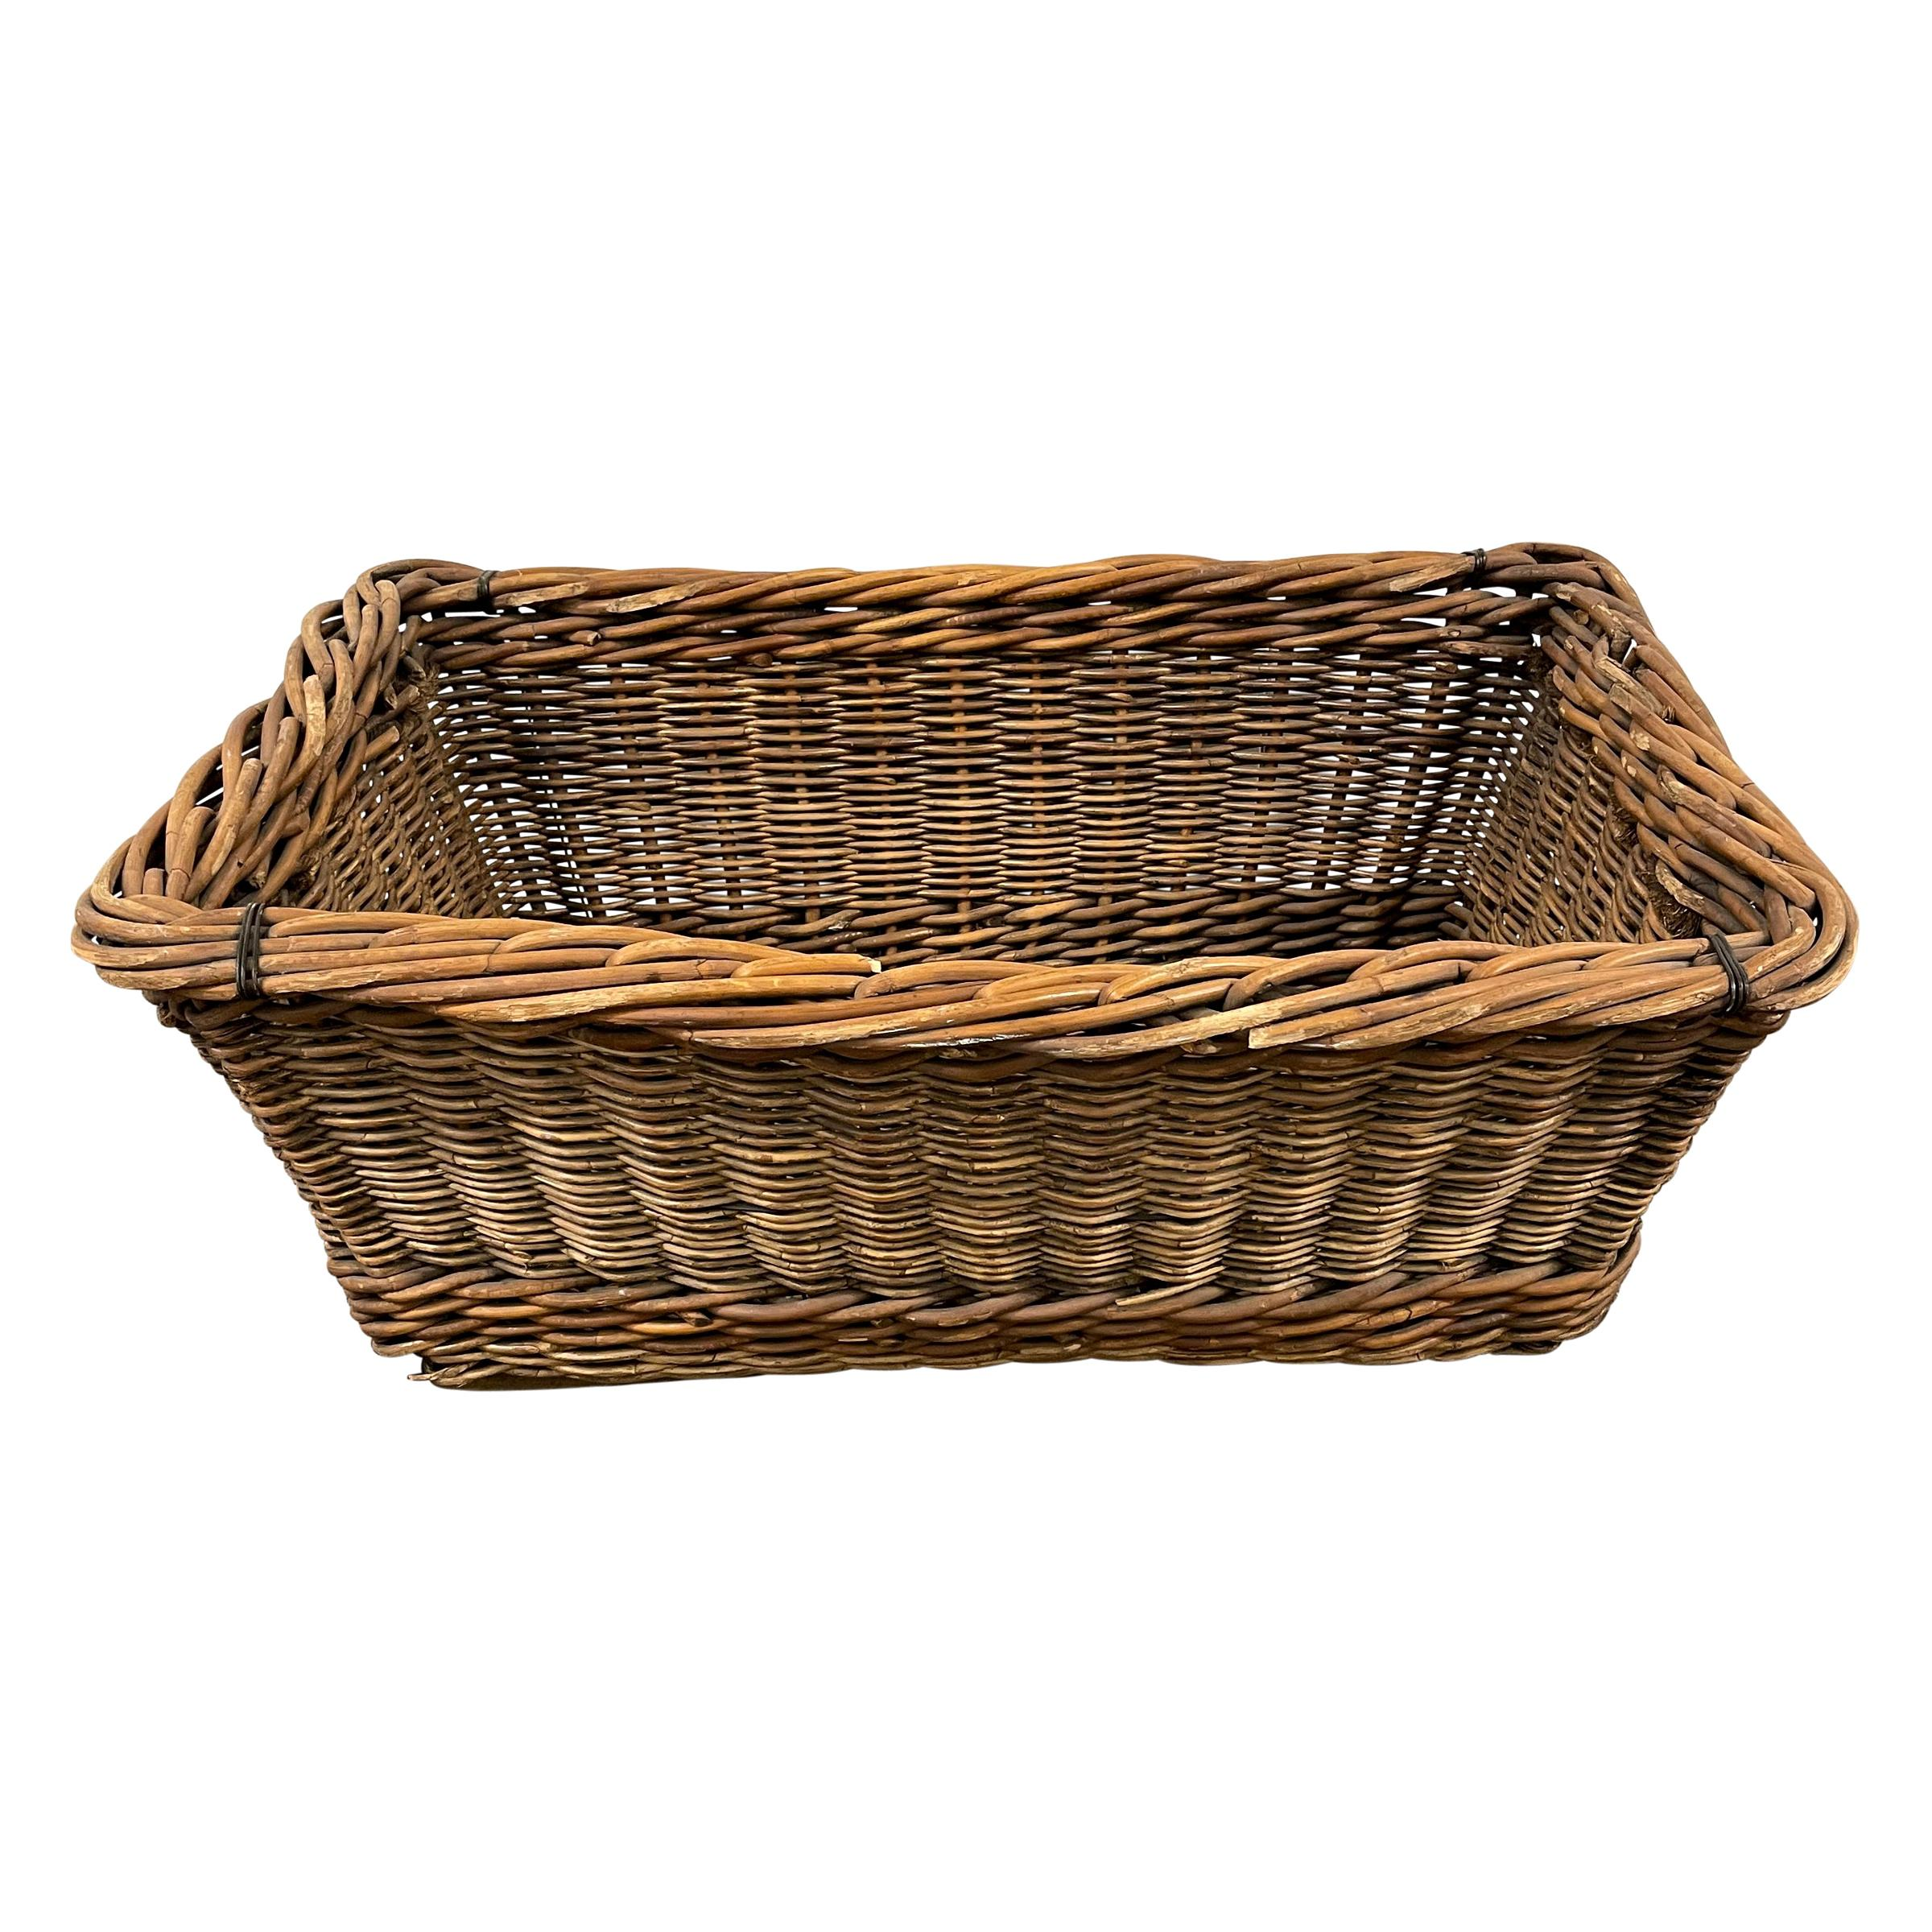 Early 20th Century French Basket